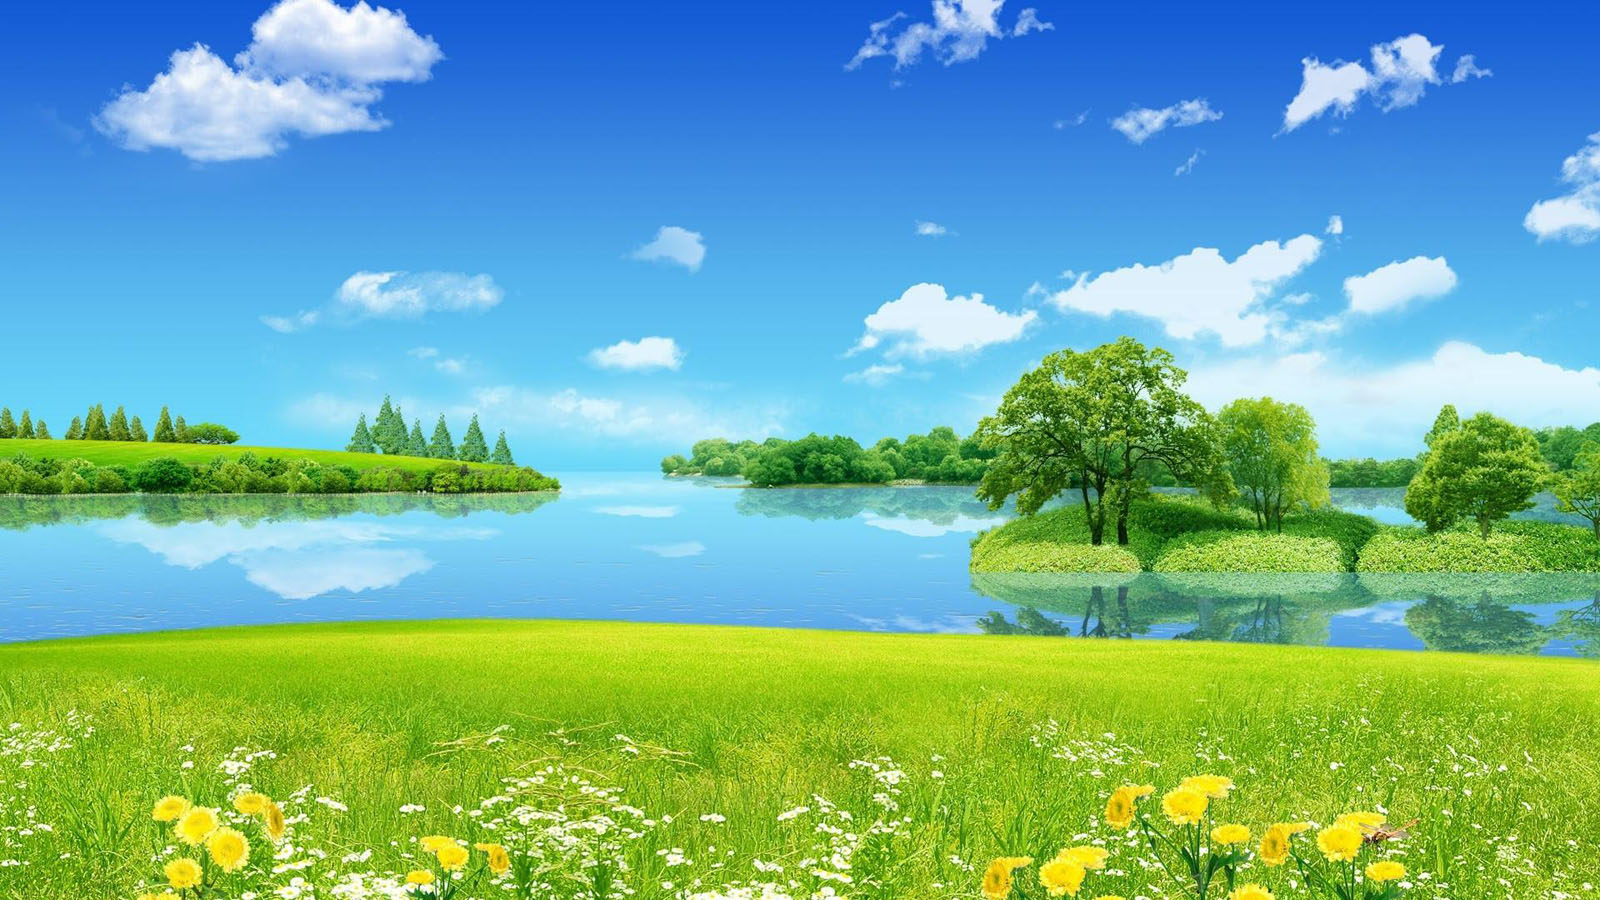 Spring Landscape Wallpaper - WallpaperSafari